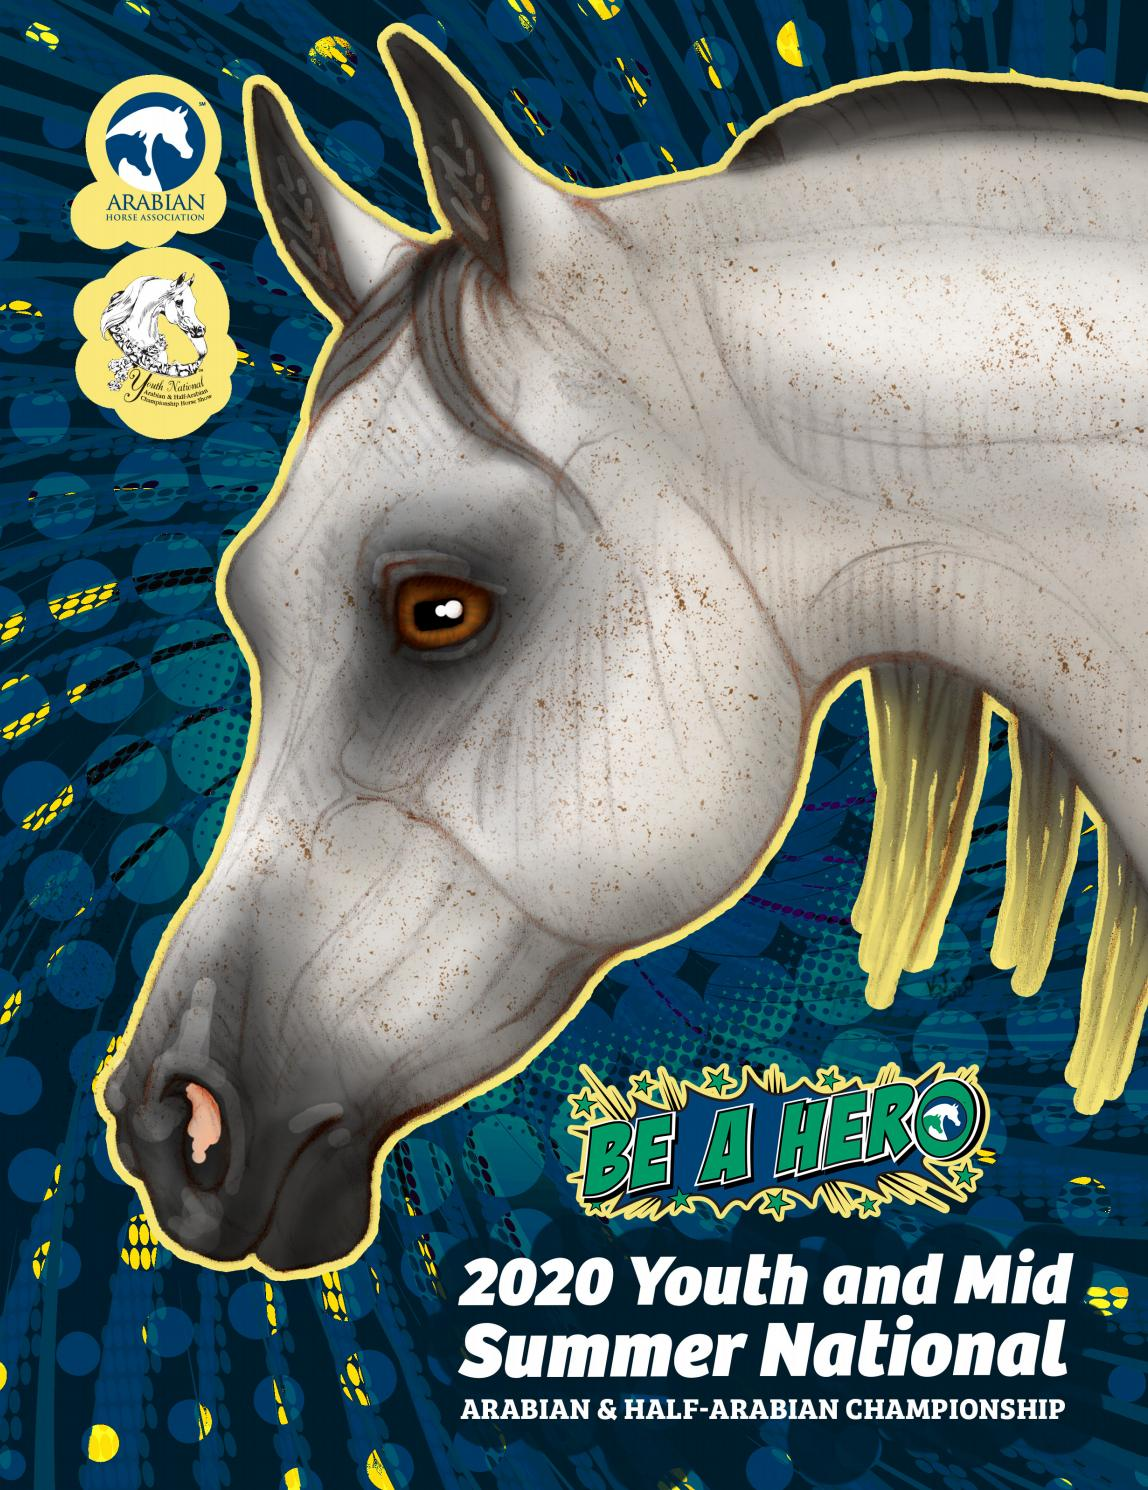 2020 Youth Mid Summer Nation Arabian And Half Arabian Championship Program By Arabian Horse Association Issuu